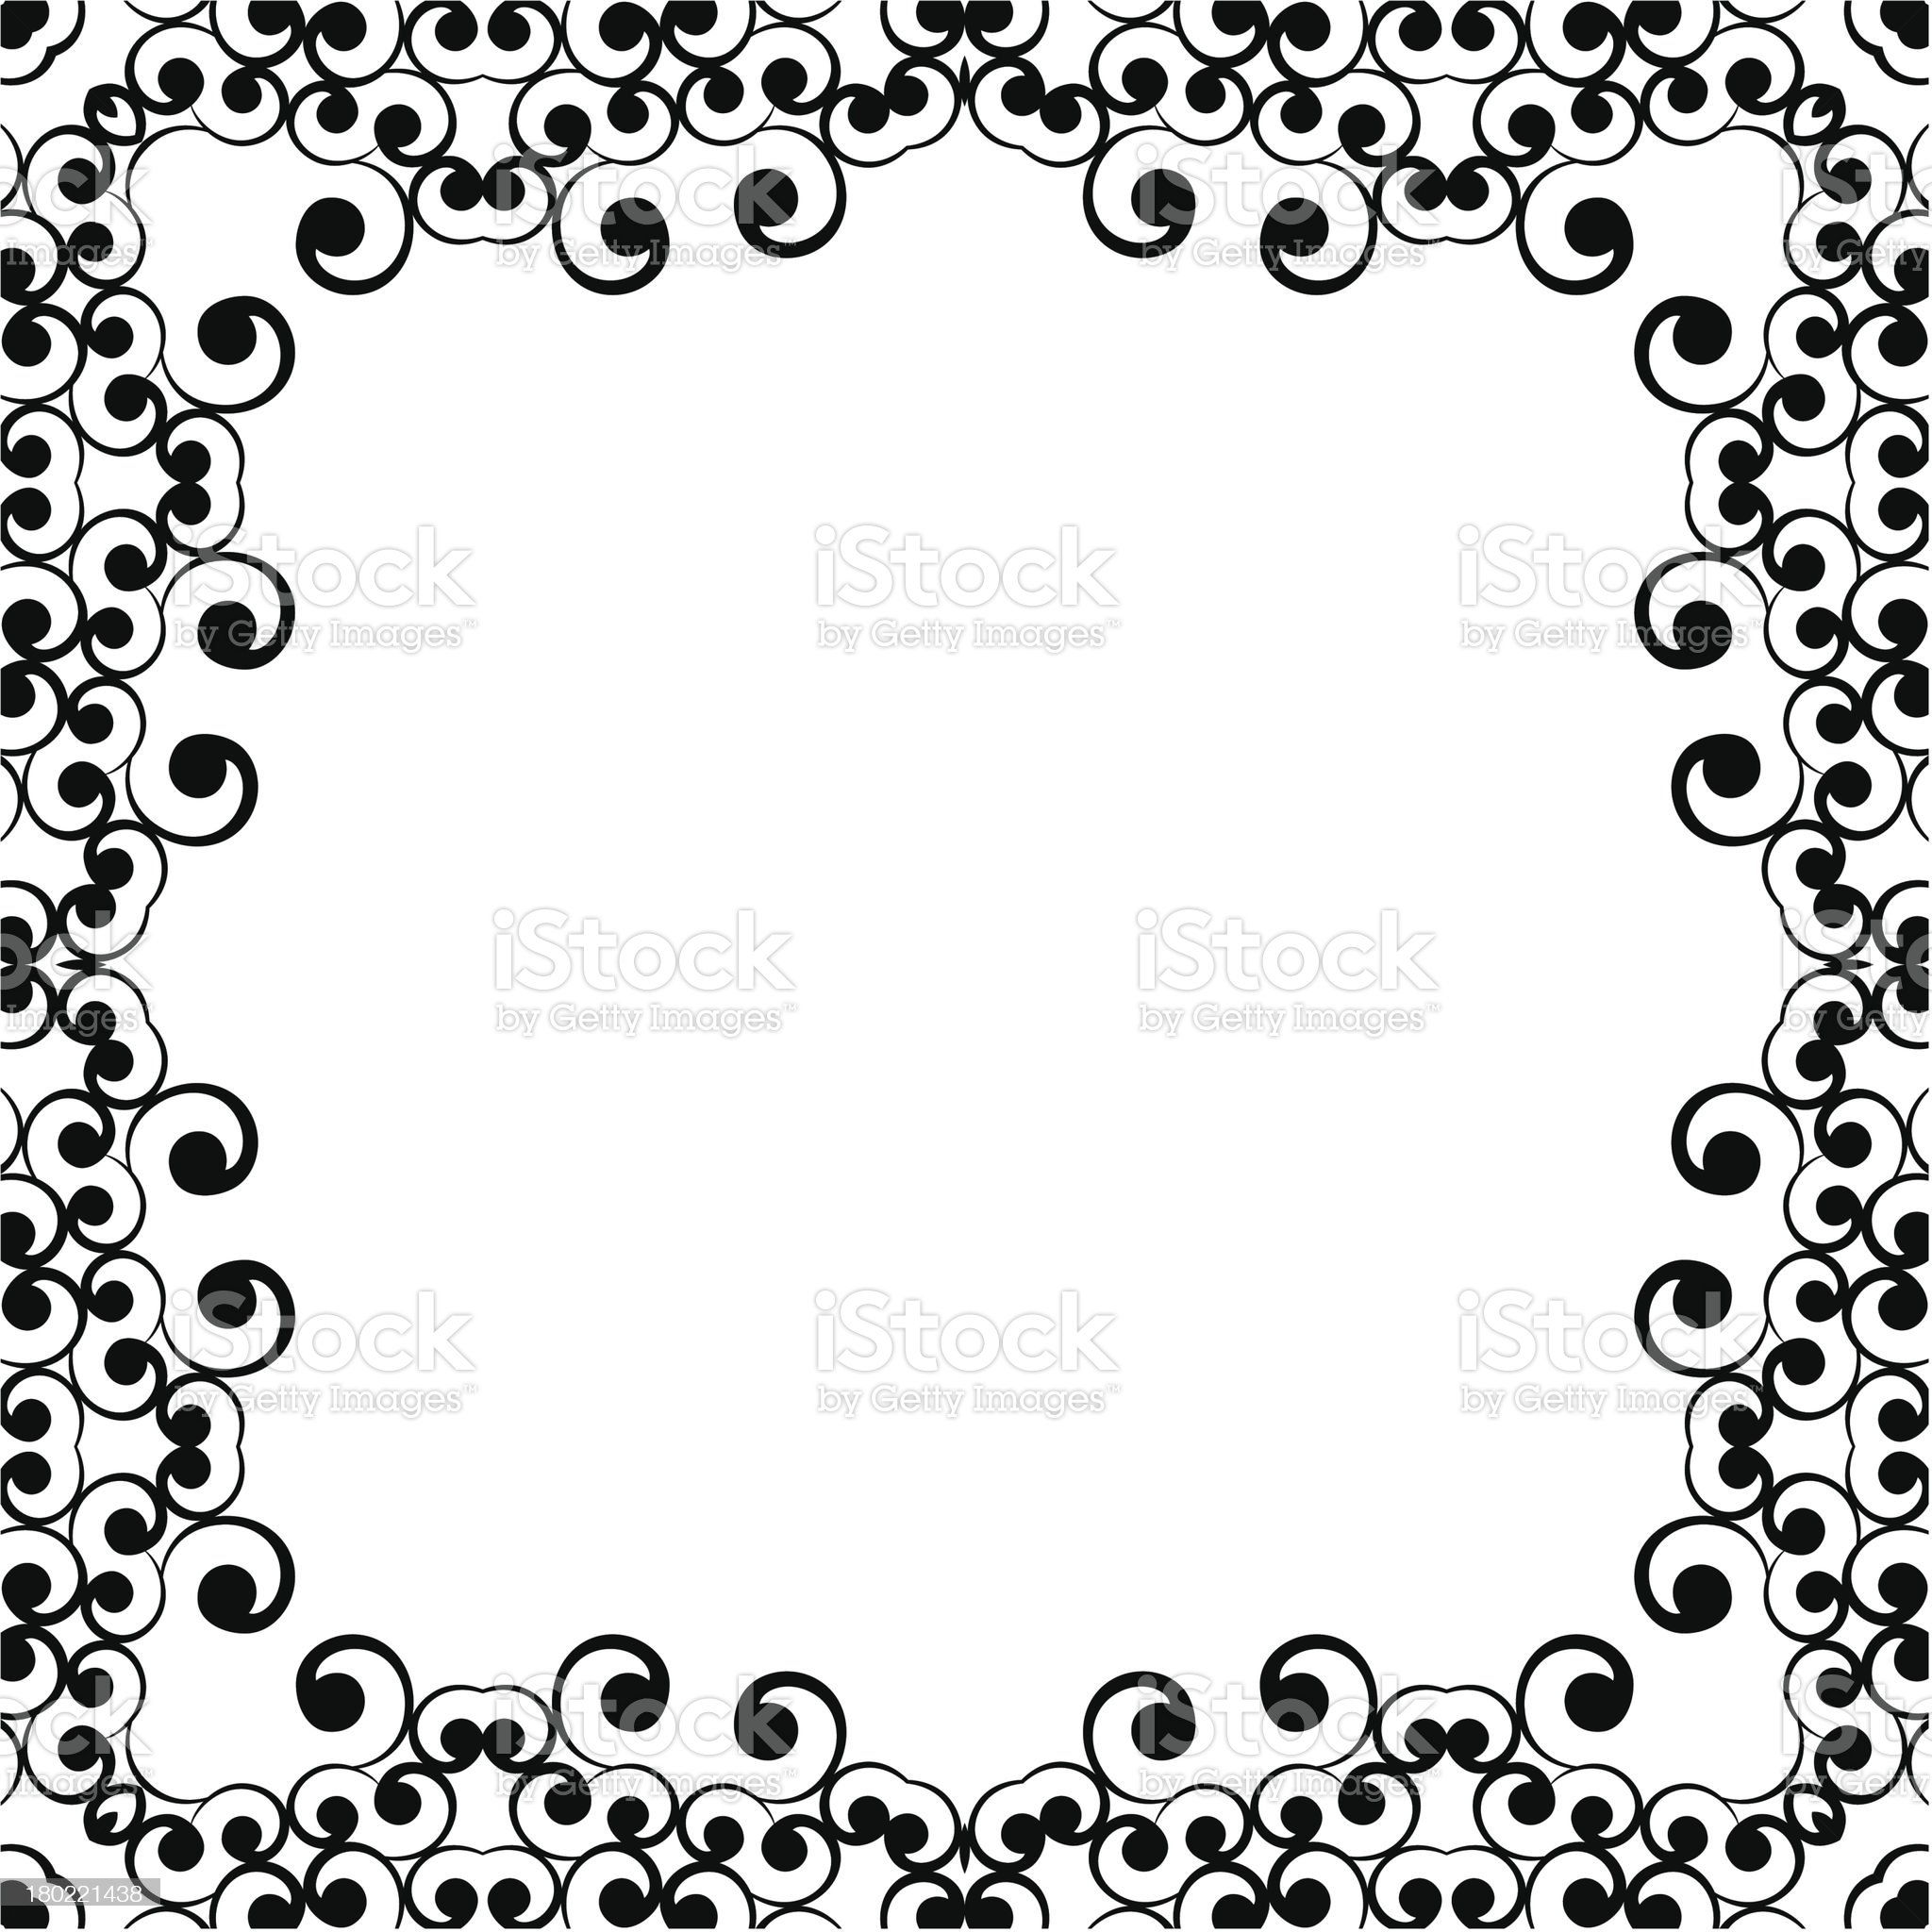 Frame ornament vintage floral design royalty-free stock vector art